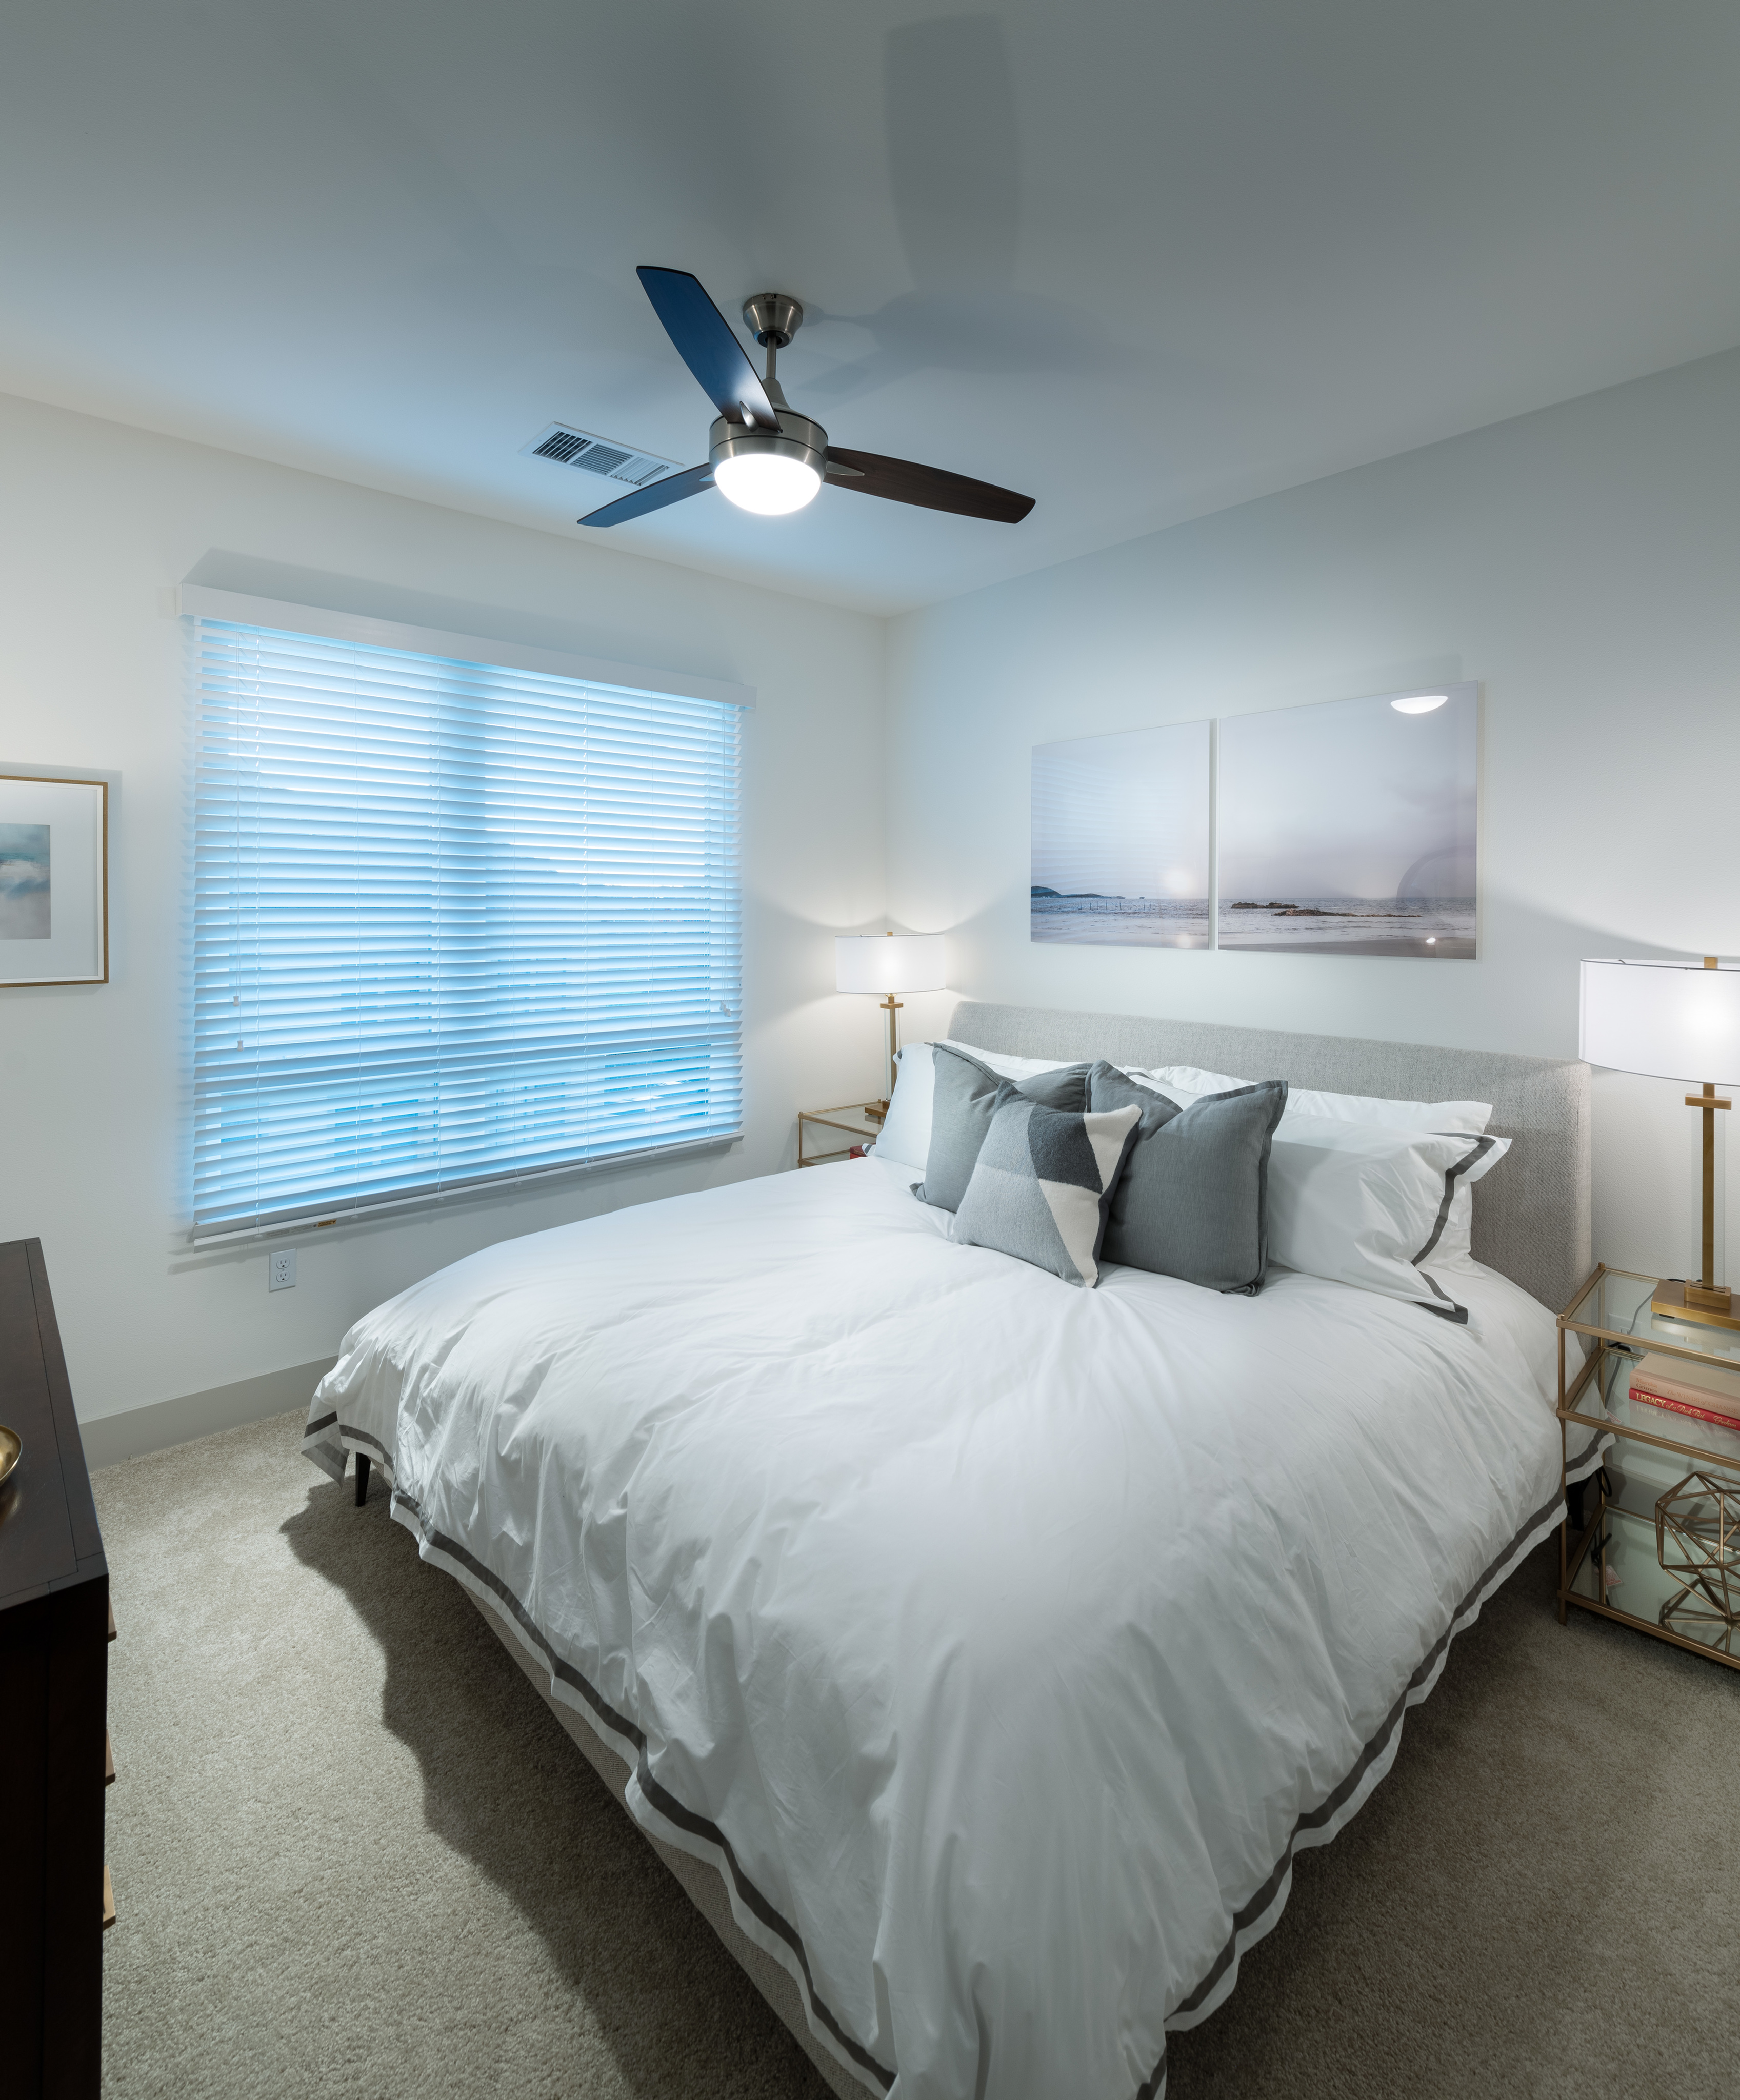 Image of Ample bedrooms that accommodate king-sized beds for Hanover Northgate